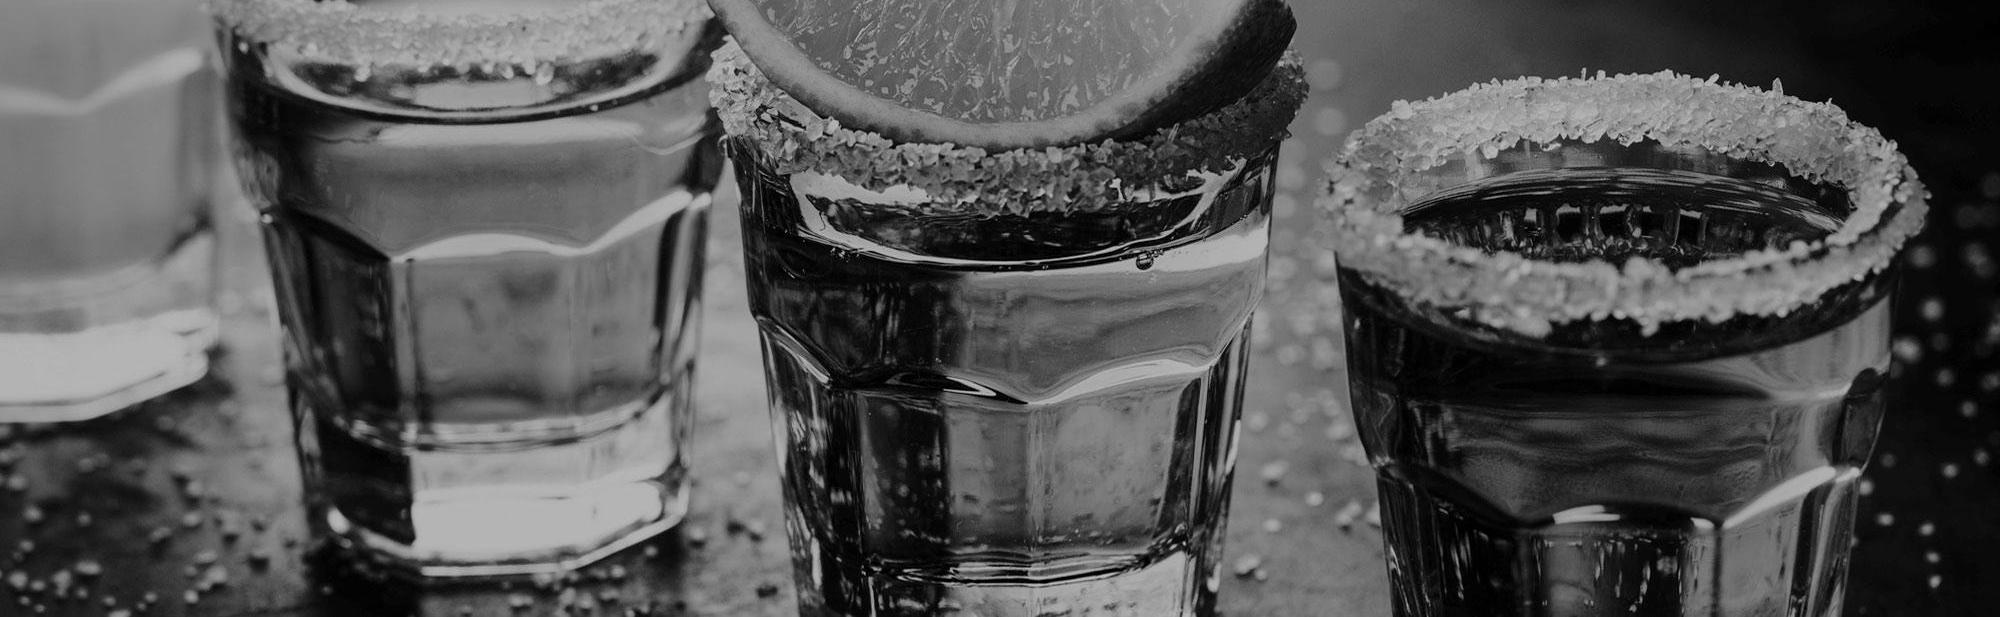 Tasty alcohol drink cocktail tequila with lime and salt on vibrant dark background. Closeup. Horizontal.